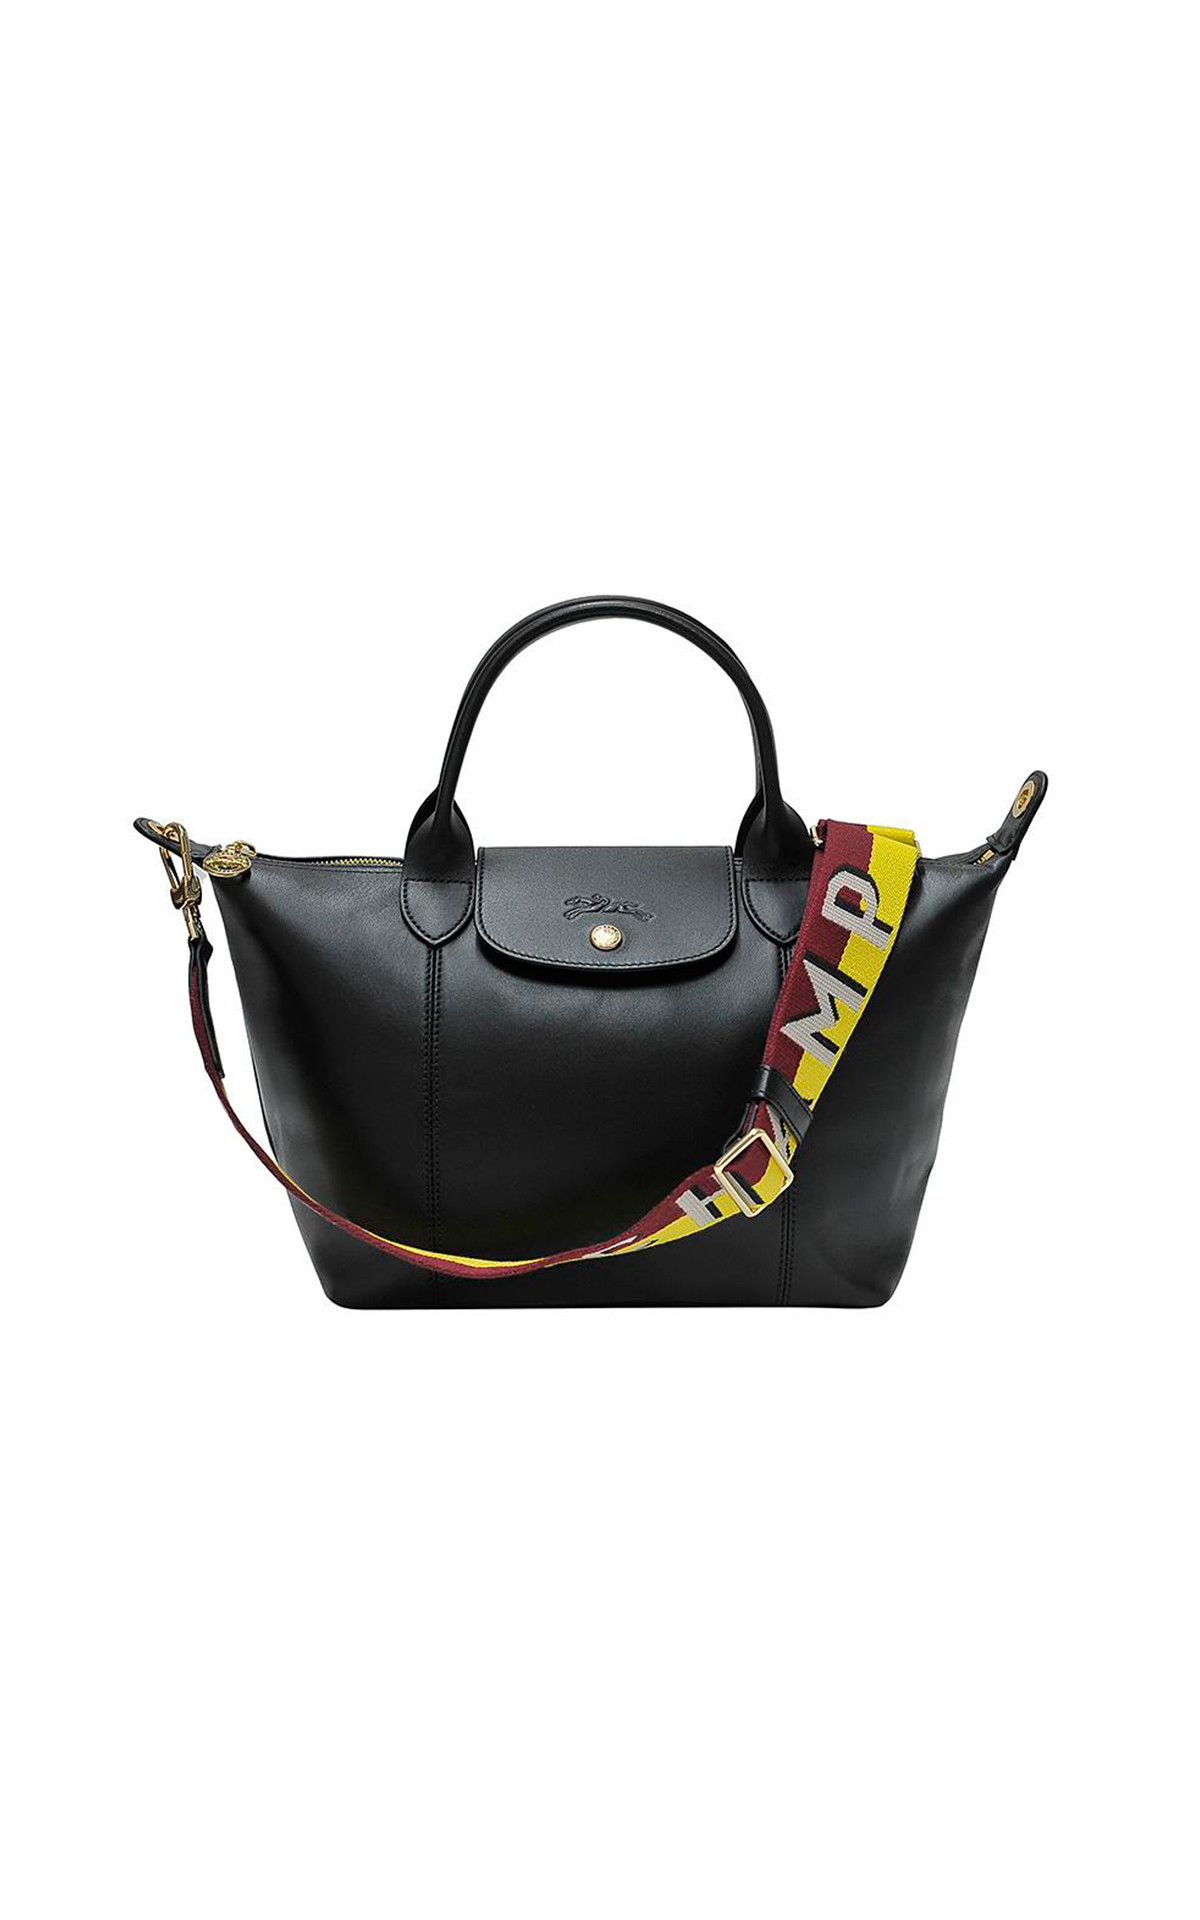 Black leather bag Longchamp